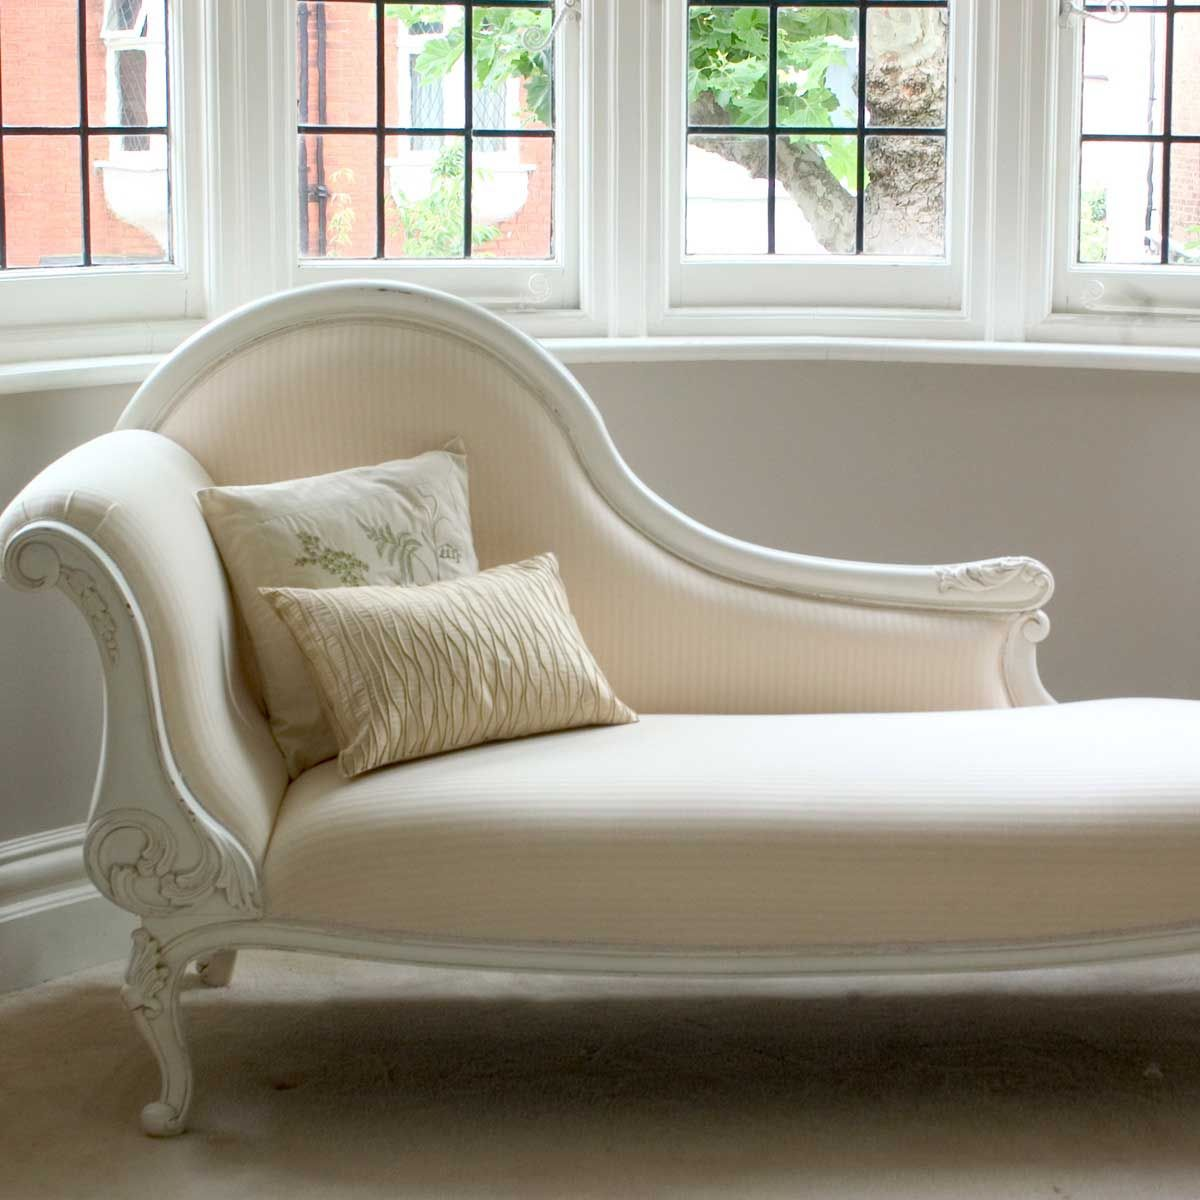 Chaise Lounge Bedroom Furniture  Most Popular Interior Paint Custom Bedroom Chaise Lounge Chairs Inspiration